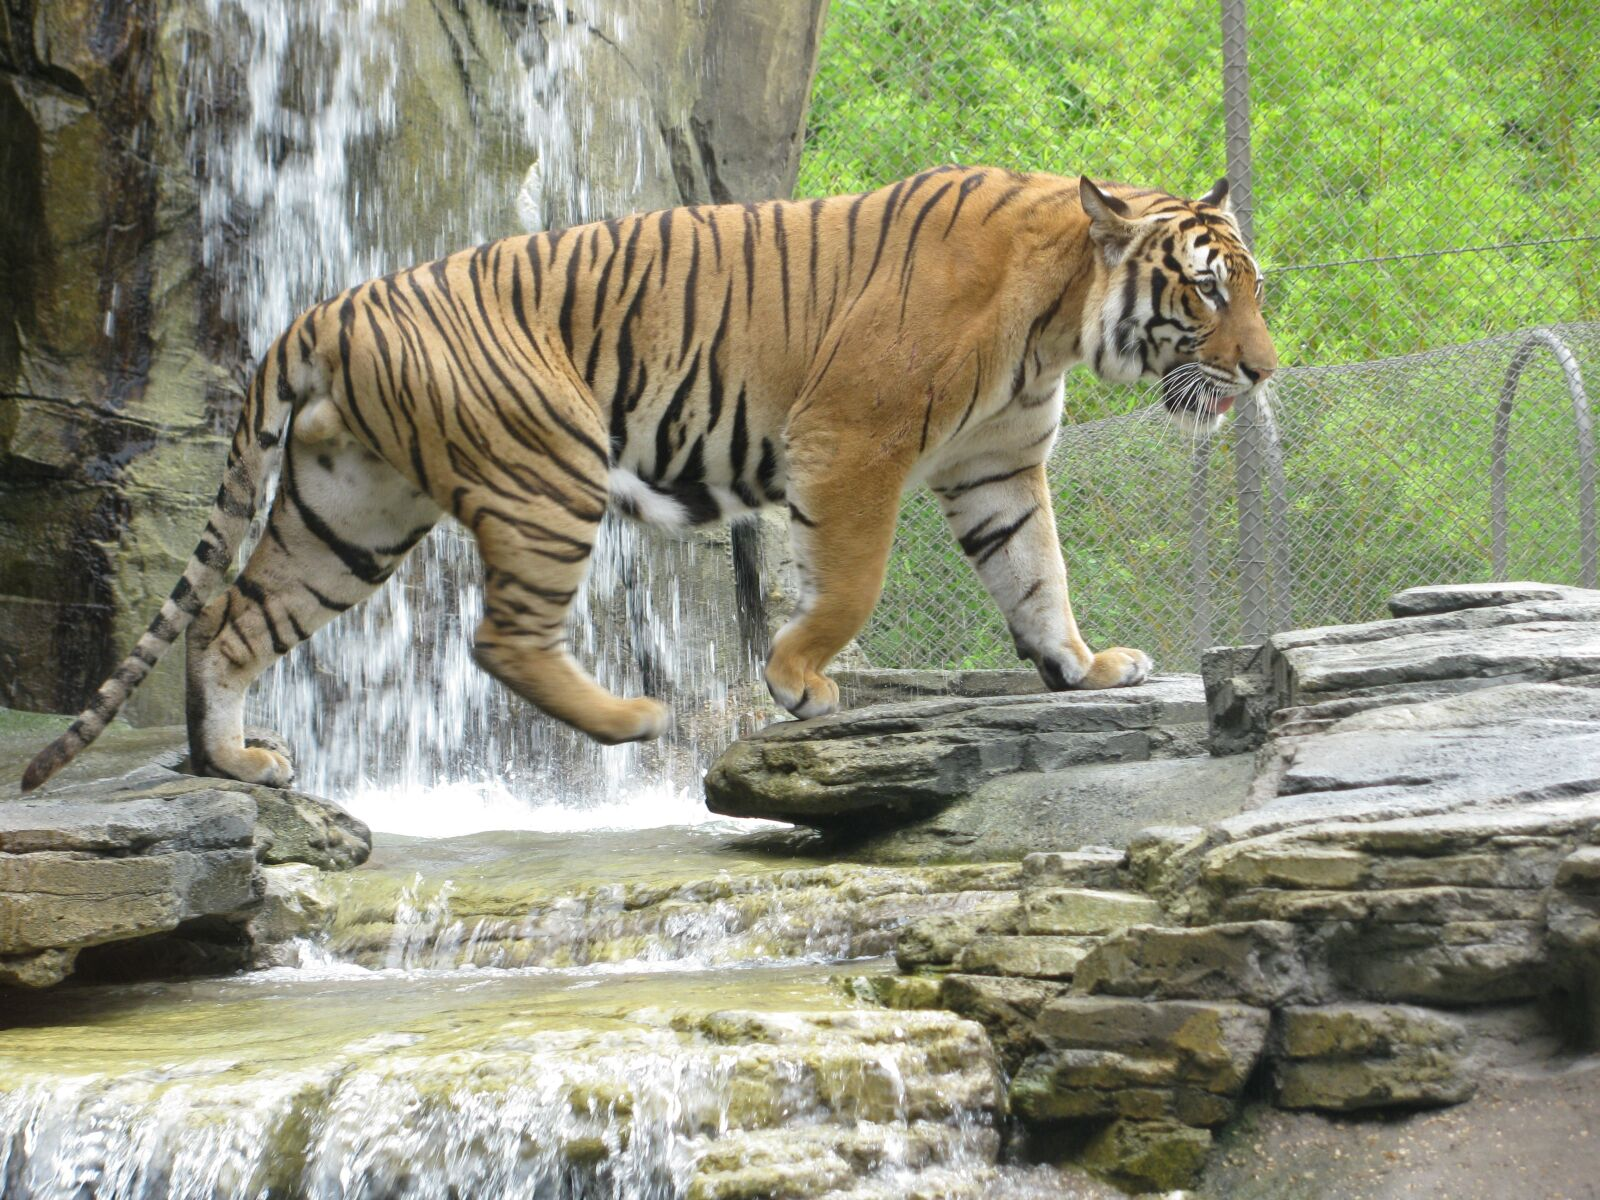 """Canon PowerShot SX110 IS sample photo. """"Tiger, stripes, waterfall"""" photography"""